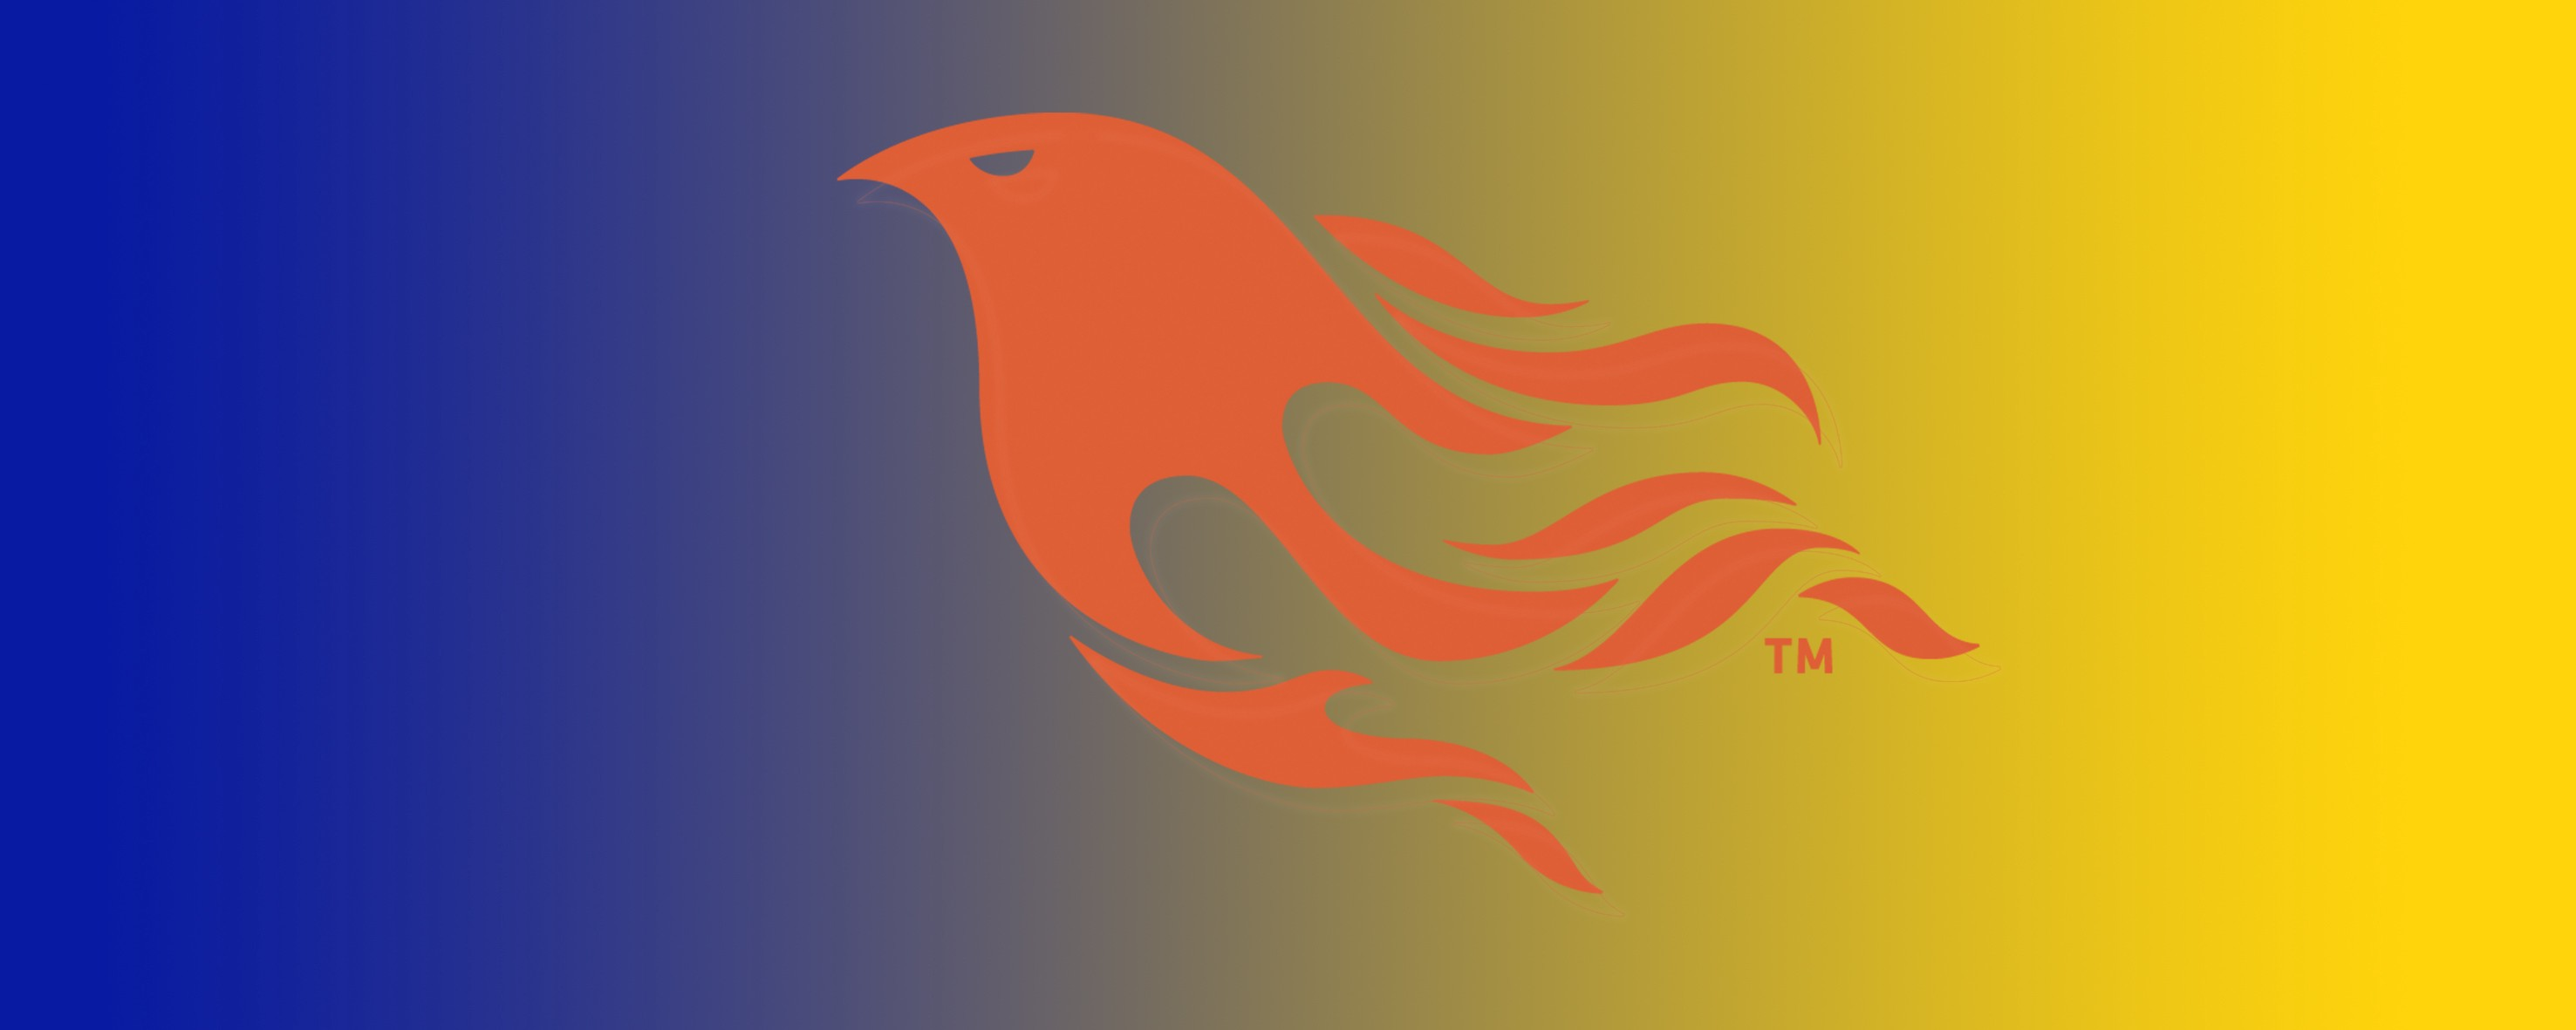 Writing acceptance tests for Phoenix with Hound - ITNEXT